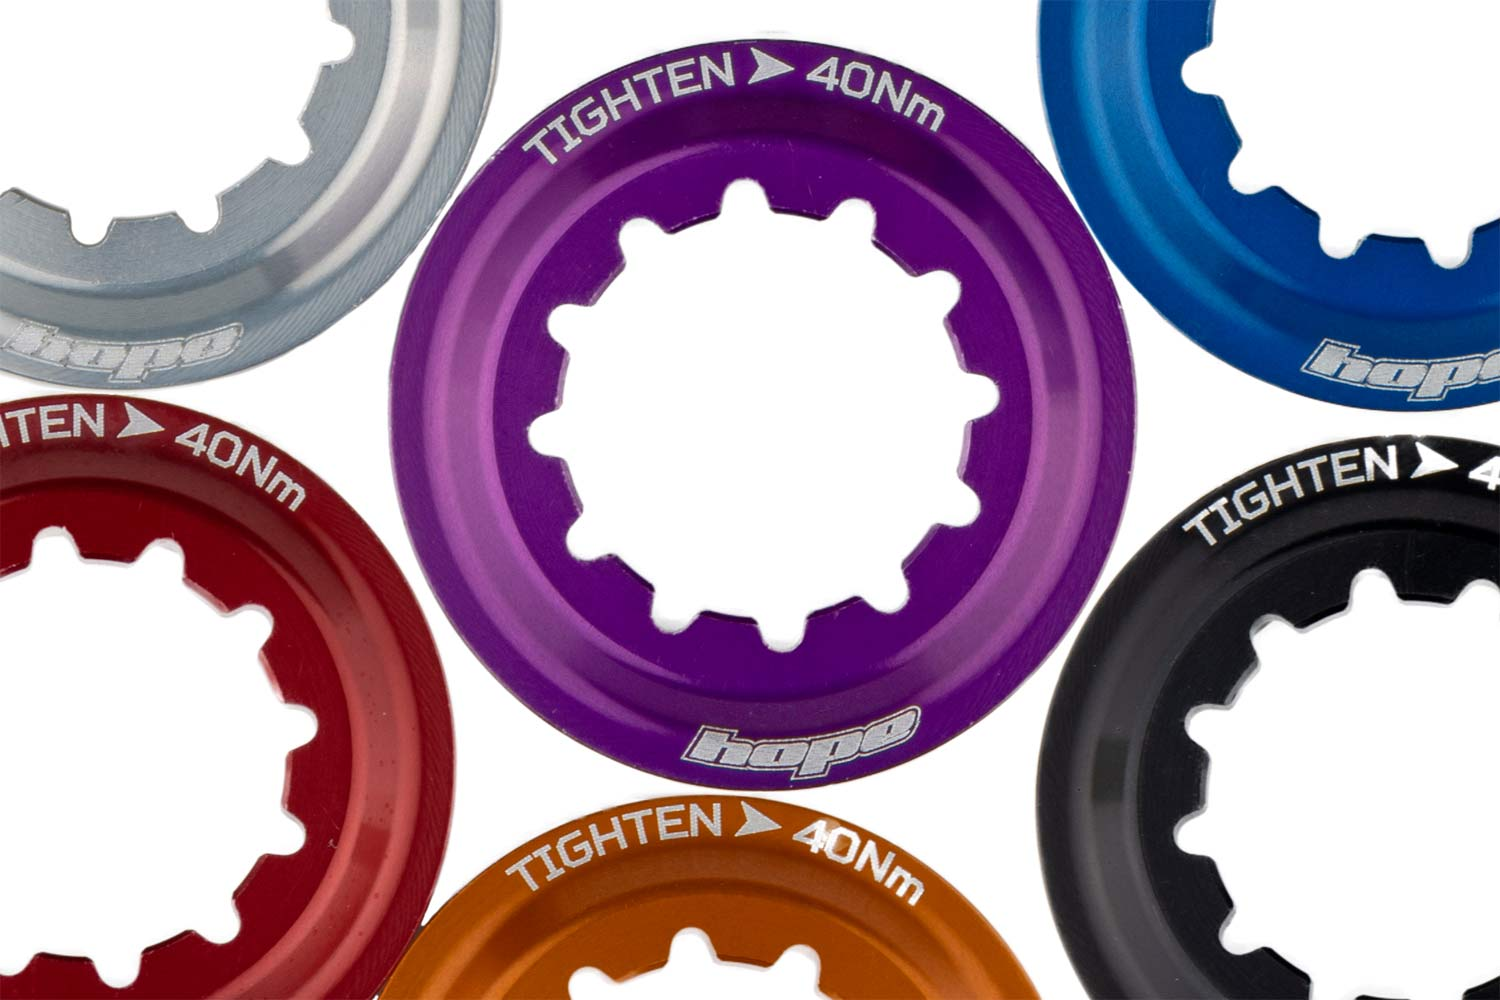 Hope Centre-Lock centerlock Lockrings add touch of colour, colorful bling to your disc brake rotors